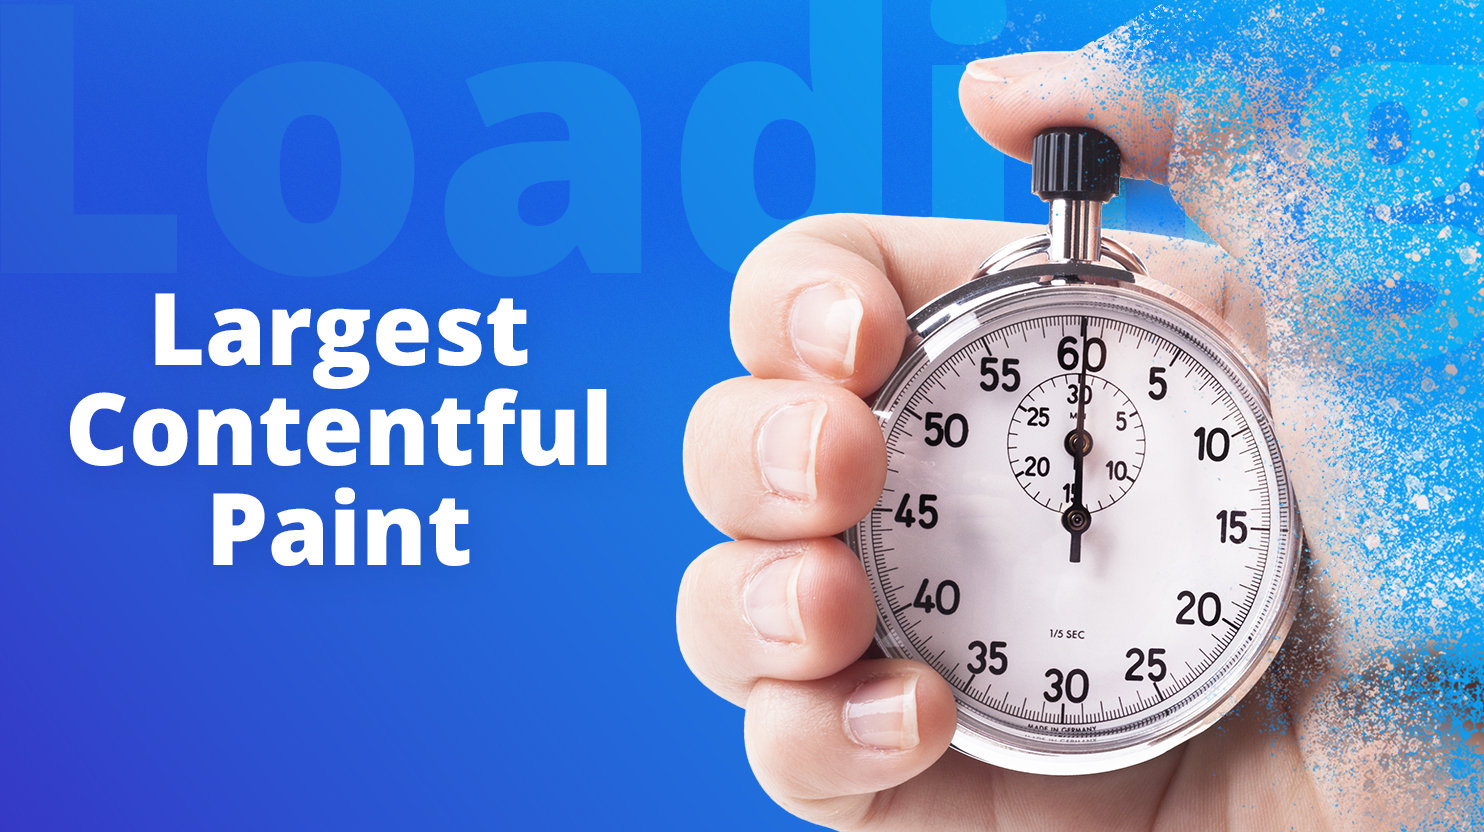 Largest Contentful Paint: How to Improve Your Score Forever | 10Web